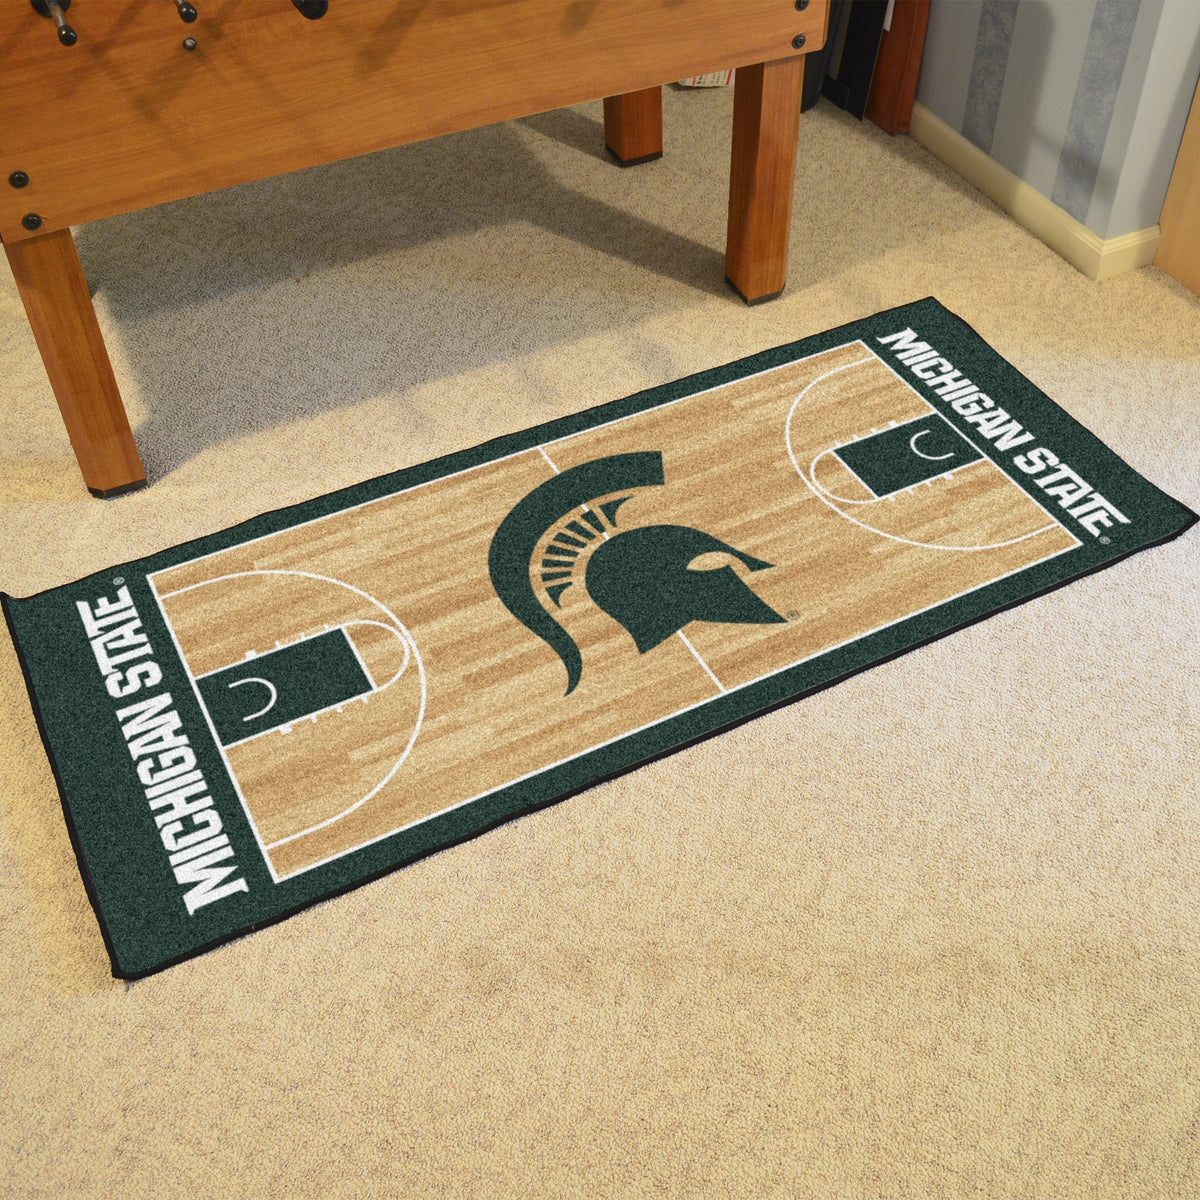 Collegiate - NCAA Basketball Runner Collegiate Mats, Rectangular Mats, NCAA Basketball Runner, Collegiate, Home Fan Mats Michigan State 2